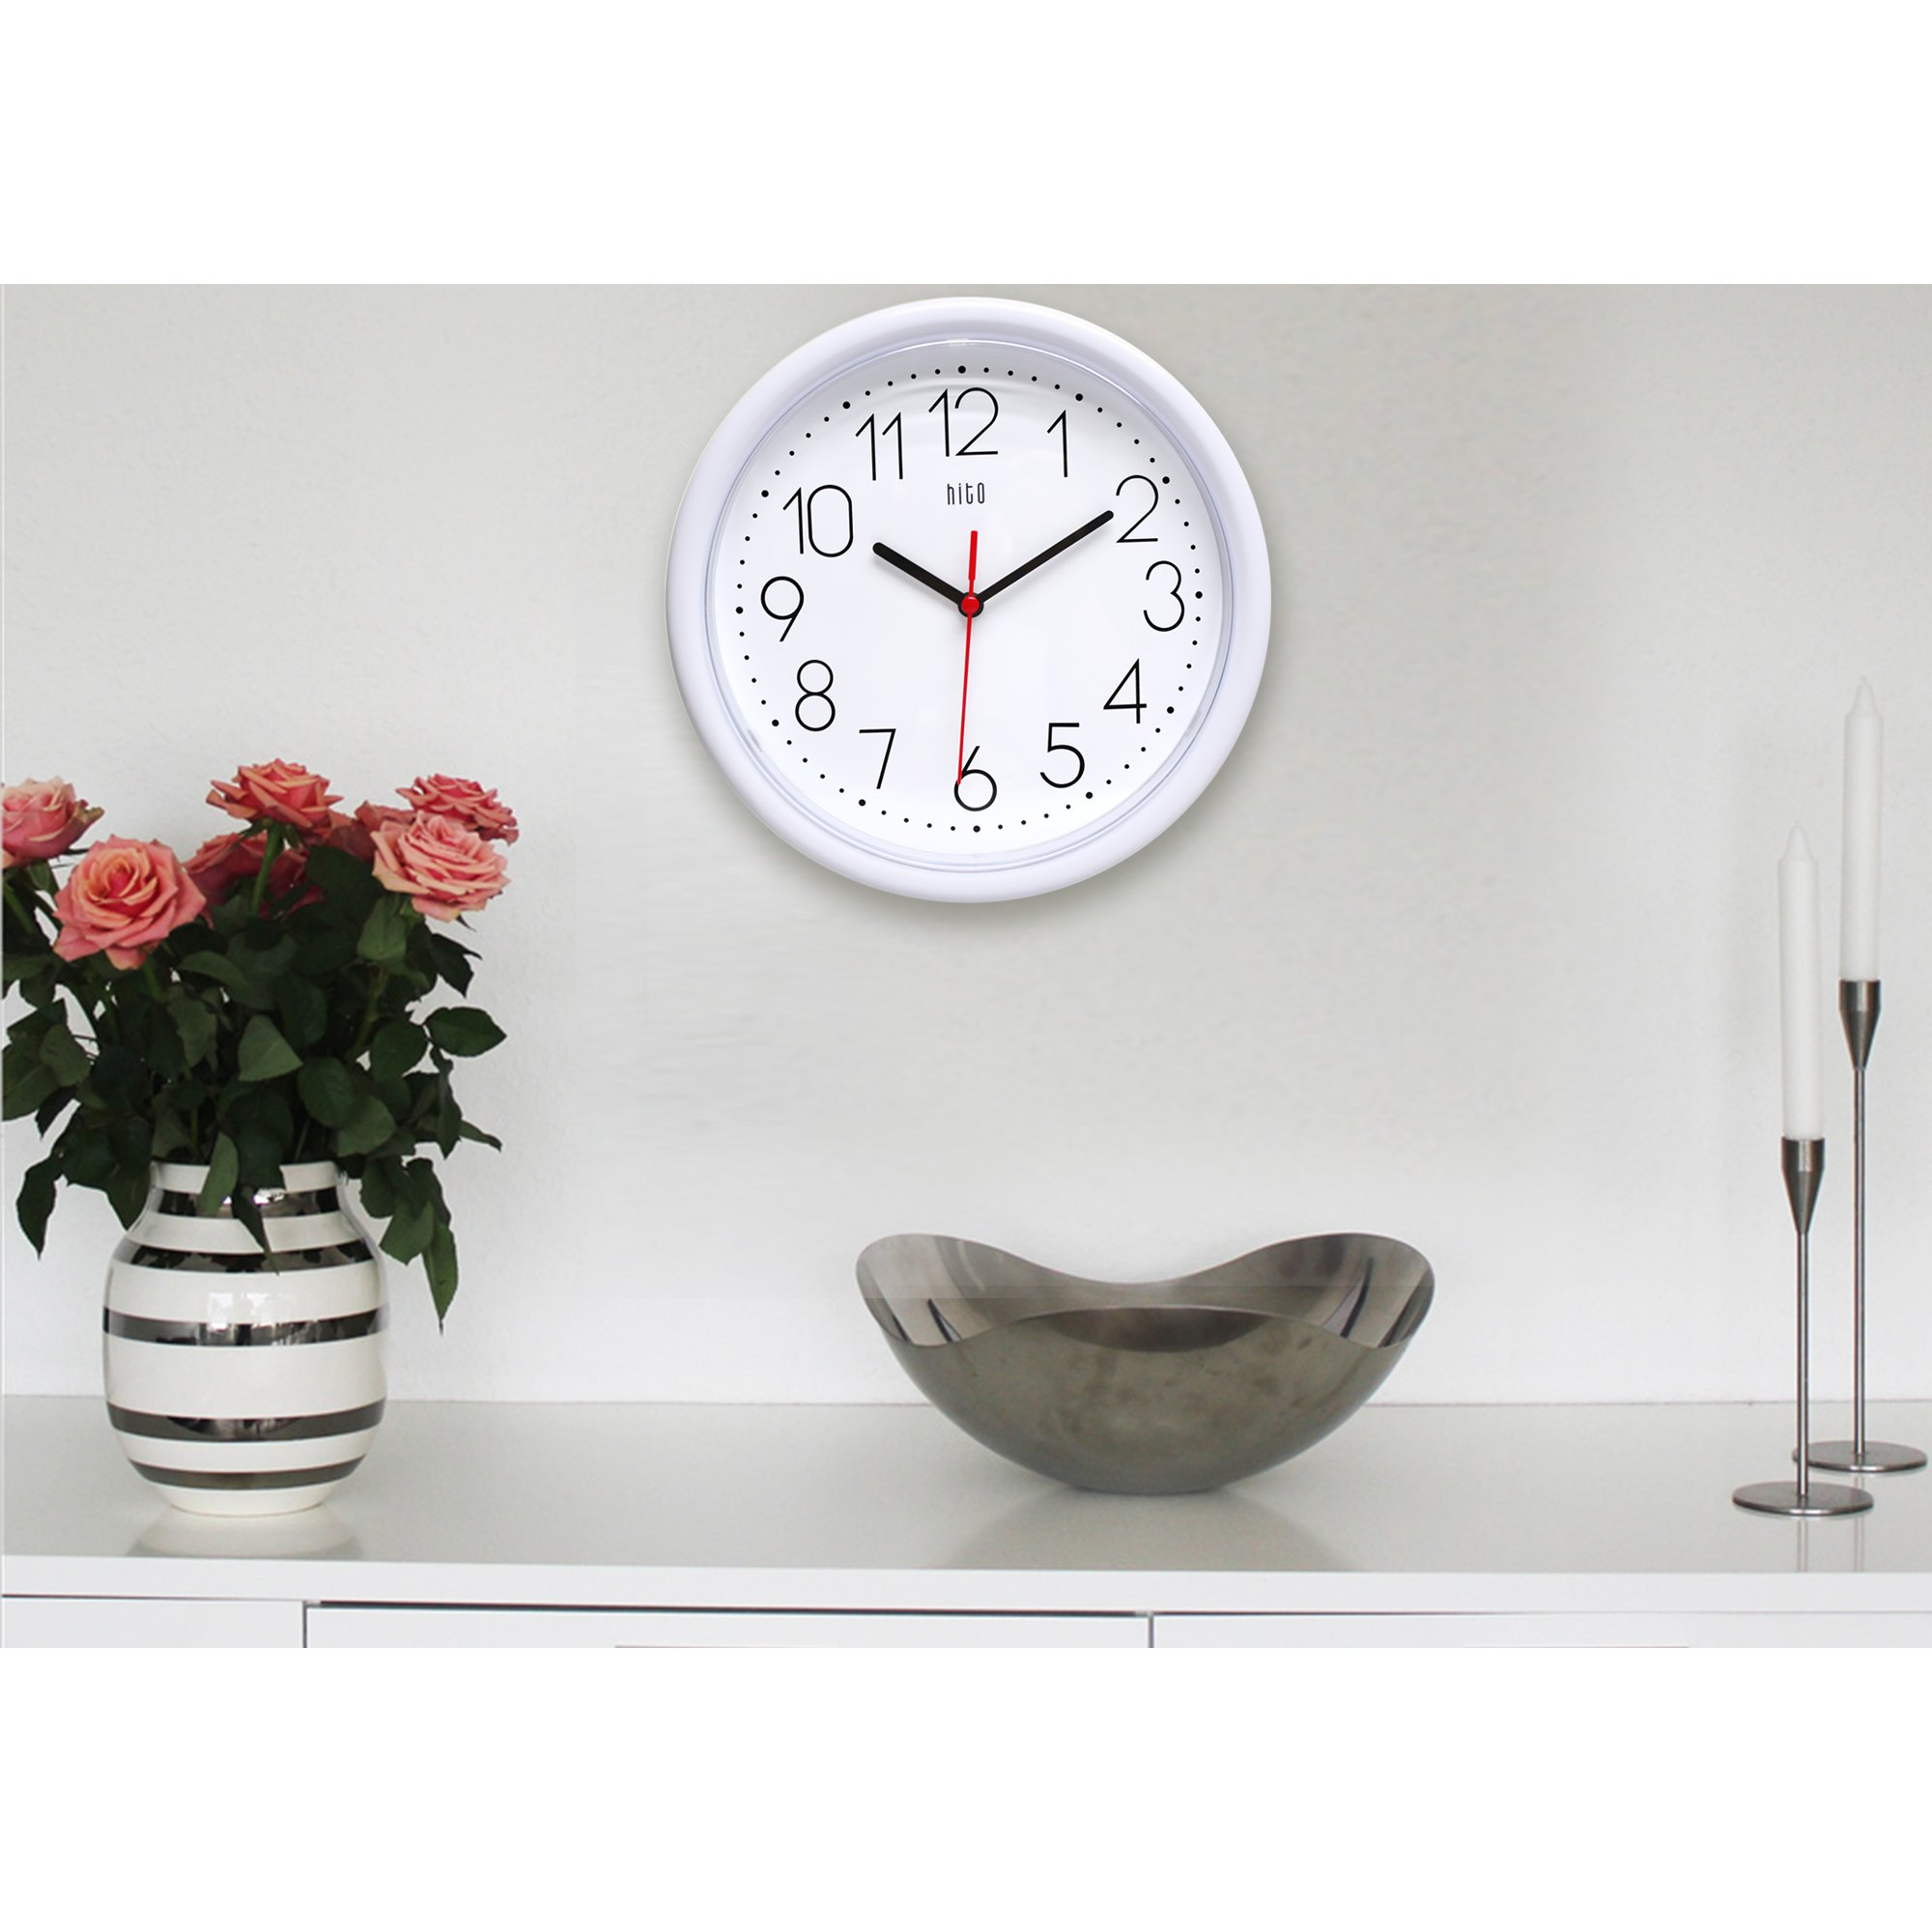 Hito Silent Wall Clock Non Ticking 10 Inch Excellent